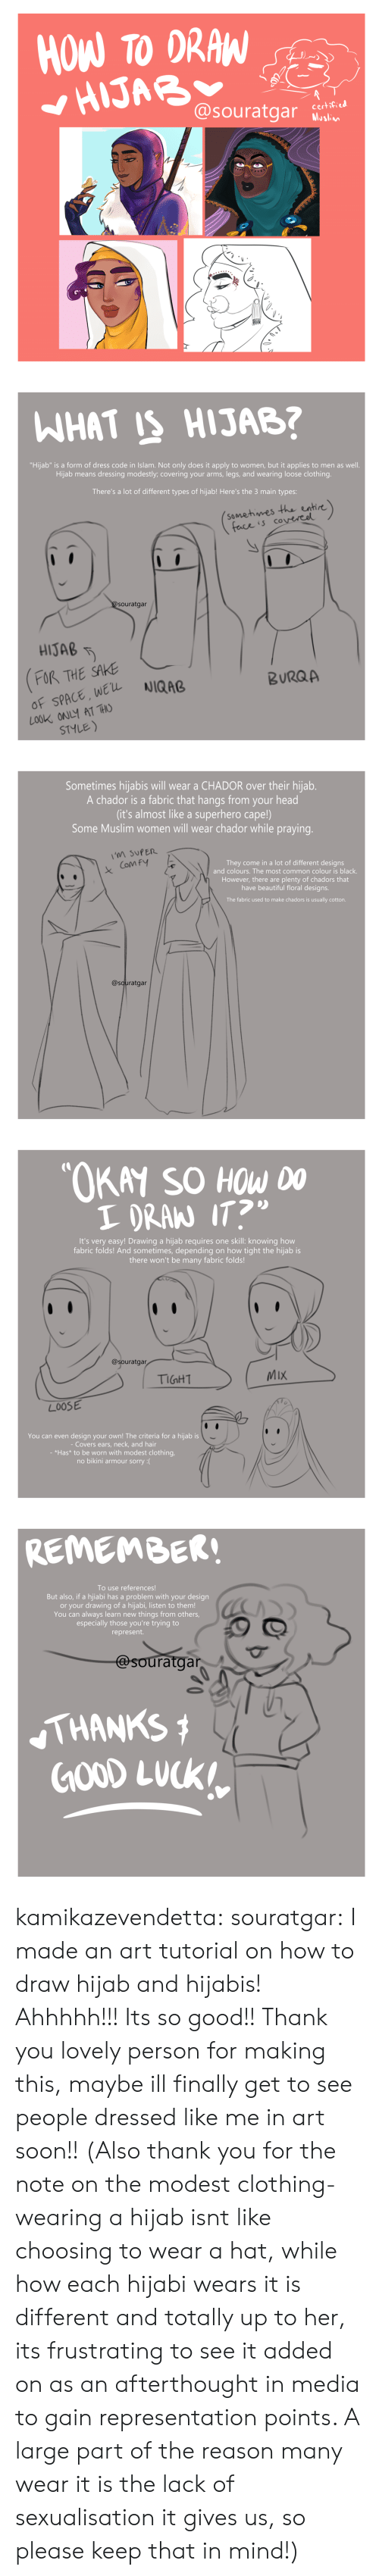 "Islam: HOW TO DRAW  HIJAB  @souratgar  certified  Muslim   WHAT IS HIJAB?  ""Hijab"" is a form of dress code in Islam. Not only does it apply to women, but it applies to men as well.  Hijab means dressing modestly; covering your arms, legs, and wearing loose clothing.  There's a lot of different types of hijab! Here's the 3 main types:  (somehimes the entire)  face is covereel  @Souratgar  HIJAB  FOR THE SAKE  OF SPACE, WEL  LOOK ONLY AT THO  STYLE)  NIQAB  BURQA   Sometimes hijabis will wear a CHADOR over their hijab.  A chador is a fabric that hangs from your head  (it's almost like a superhero cape!)  Some Muslim women will wear chador while praying.  M SUPER  They come in a lot of different designs  and colours. The most common colour is black.  Com FY  However, there are plenty of chadors that  have beautiful floral designs.  The fabric used to make chadors is usually cotton.  @souratgar   ""OKAY SO HOW DO  I DRAN IT?  It's very easy! Drawing a hijab requi res one skill: knowing how  fabric folds! And sometimes, depending on how tight the hijab is  there won't be many fabric folds!  @souratgar  MIX  TIGHT  LOOSE  You can even design your own! The criteria for a hijab is  - Covers ears, neck, and hair  - *Has* to be worn with modest clothing,  no bikini armour sorry :(   REMEMBER!  To use references!  But also, if a hijiabi has a problem with your design  or your drawing of a hijabi, listen to them!  You can always learn new things from others,  especially those you're trying to  represent.  @souratgar  THANKS  GOOD LUCK kamikazevendetta:  souratgar: I made an art tutorial on how to draw hijab and hijabis! Ahhhhh!!! Its so good!! Thank you lovely person for making this, maybe ill finally get to see people dressed like me in art soon!!   (Also thank you for the note on the modest clothing- wearing a hijab isnt like choosing to wear a hat, while how each hijabi wears it is different and totally up to her, its frustrating to see it added on as an afterthought in media to gain representation points. A large part of the reason many wear it is the lack of sexualisation it gives us, so please keep that in mind!)"